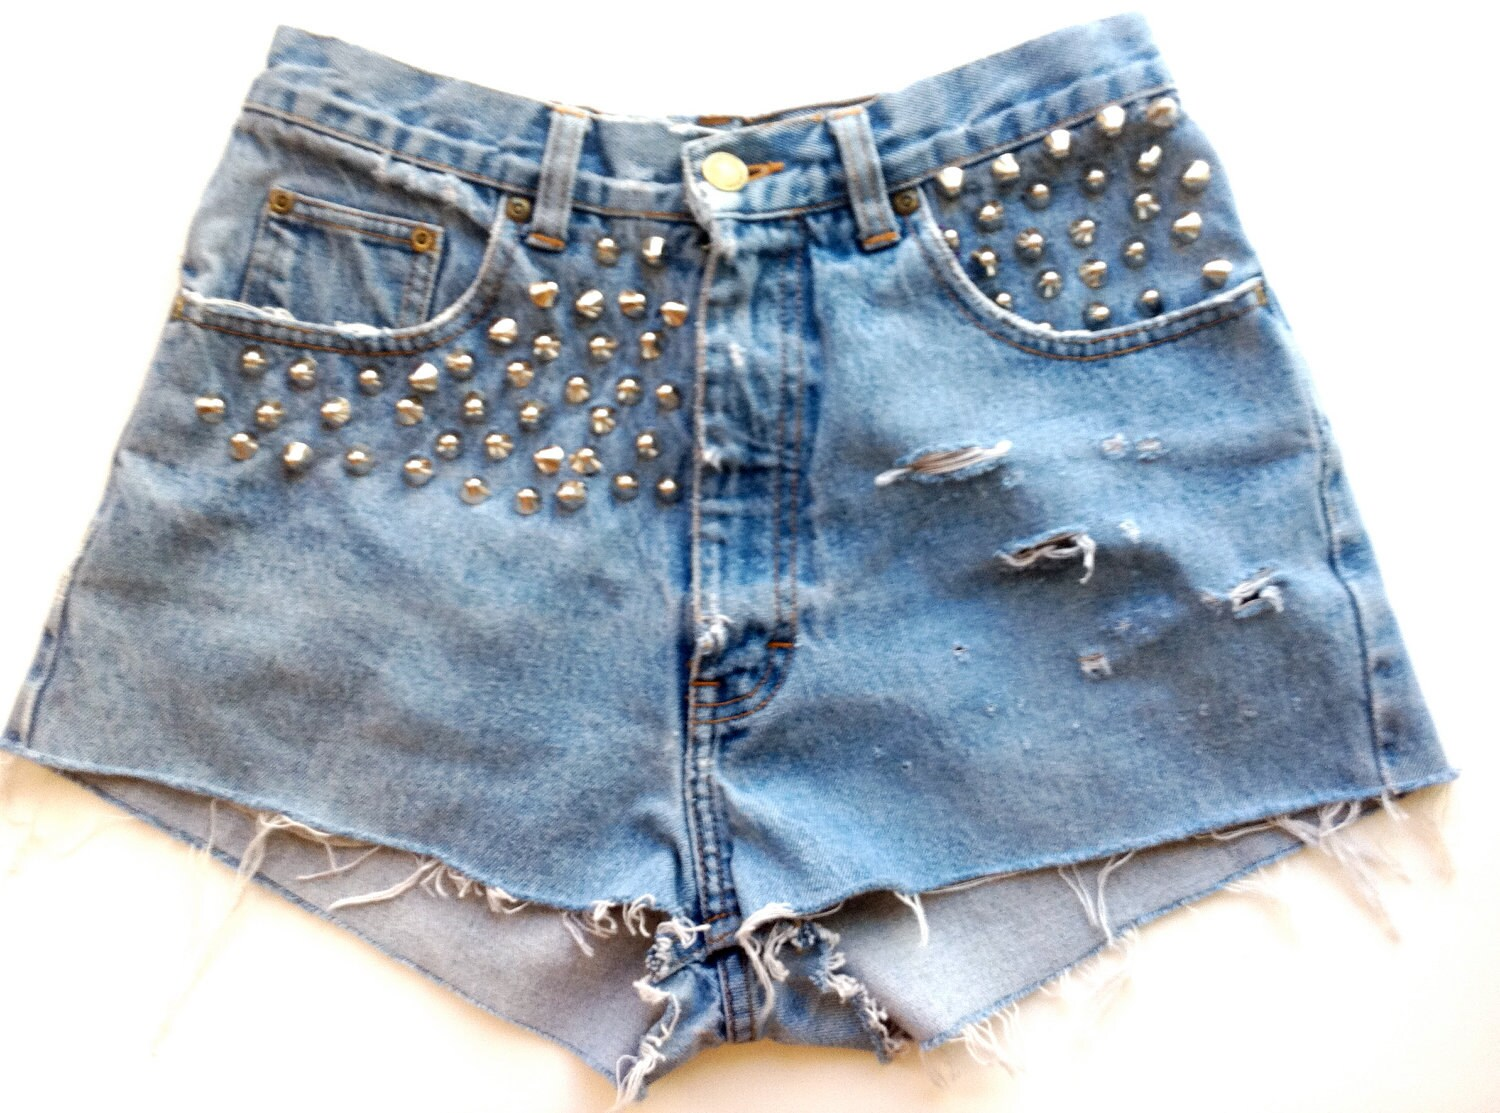 Vintage High Waist Studded and Distressed Denim Shorts